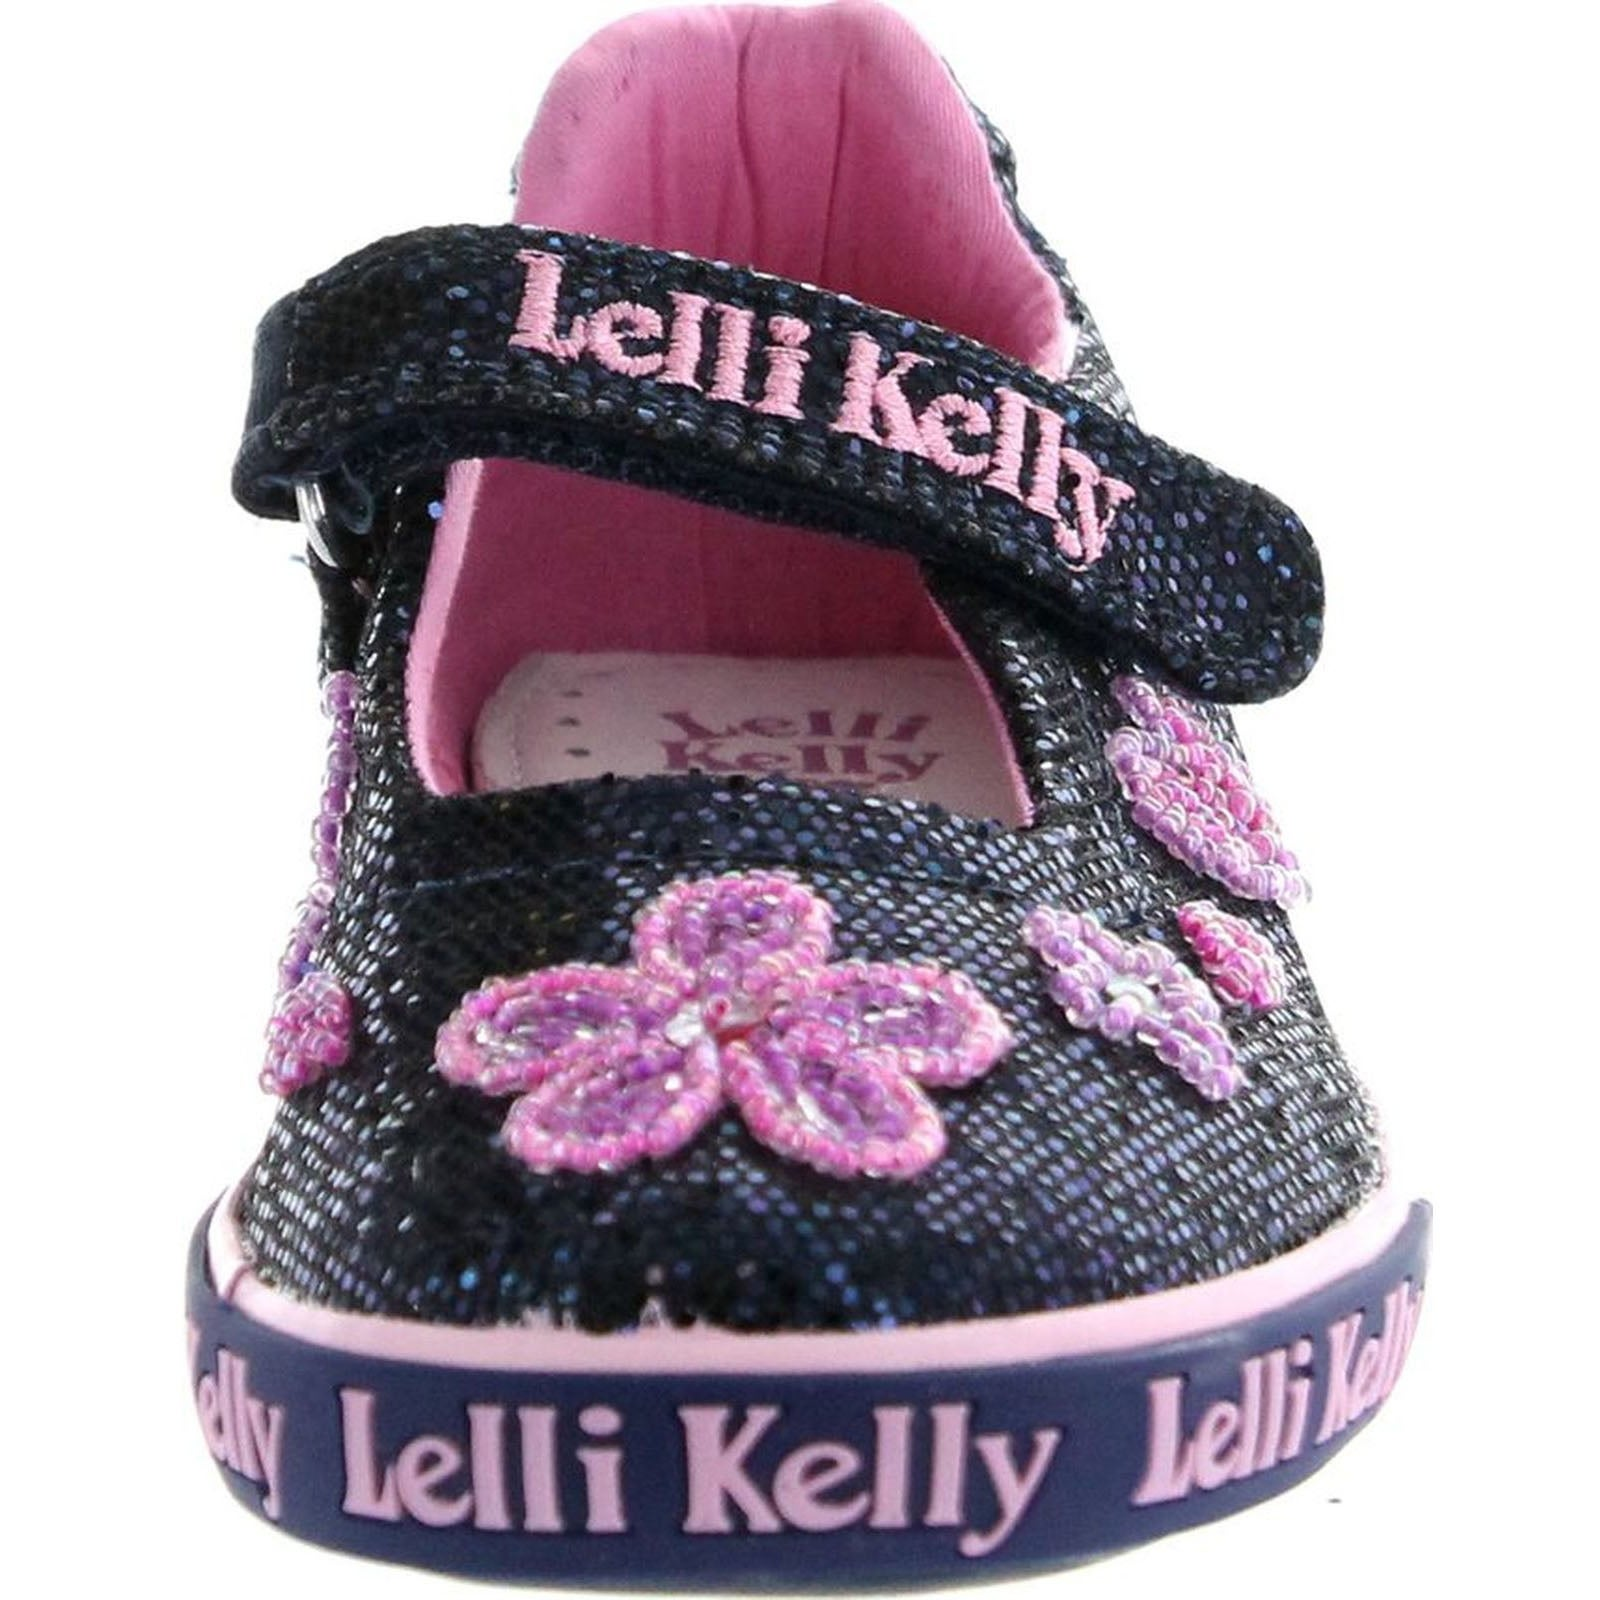 c3547ec4 Shop Lelli Kelly Girls Dafne Cute Flats Shoes - Free Shipping Today -  Overstock - 14390471